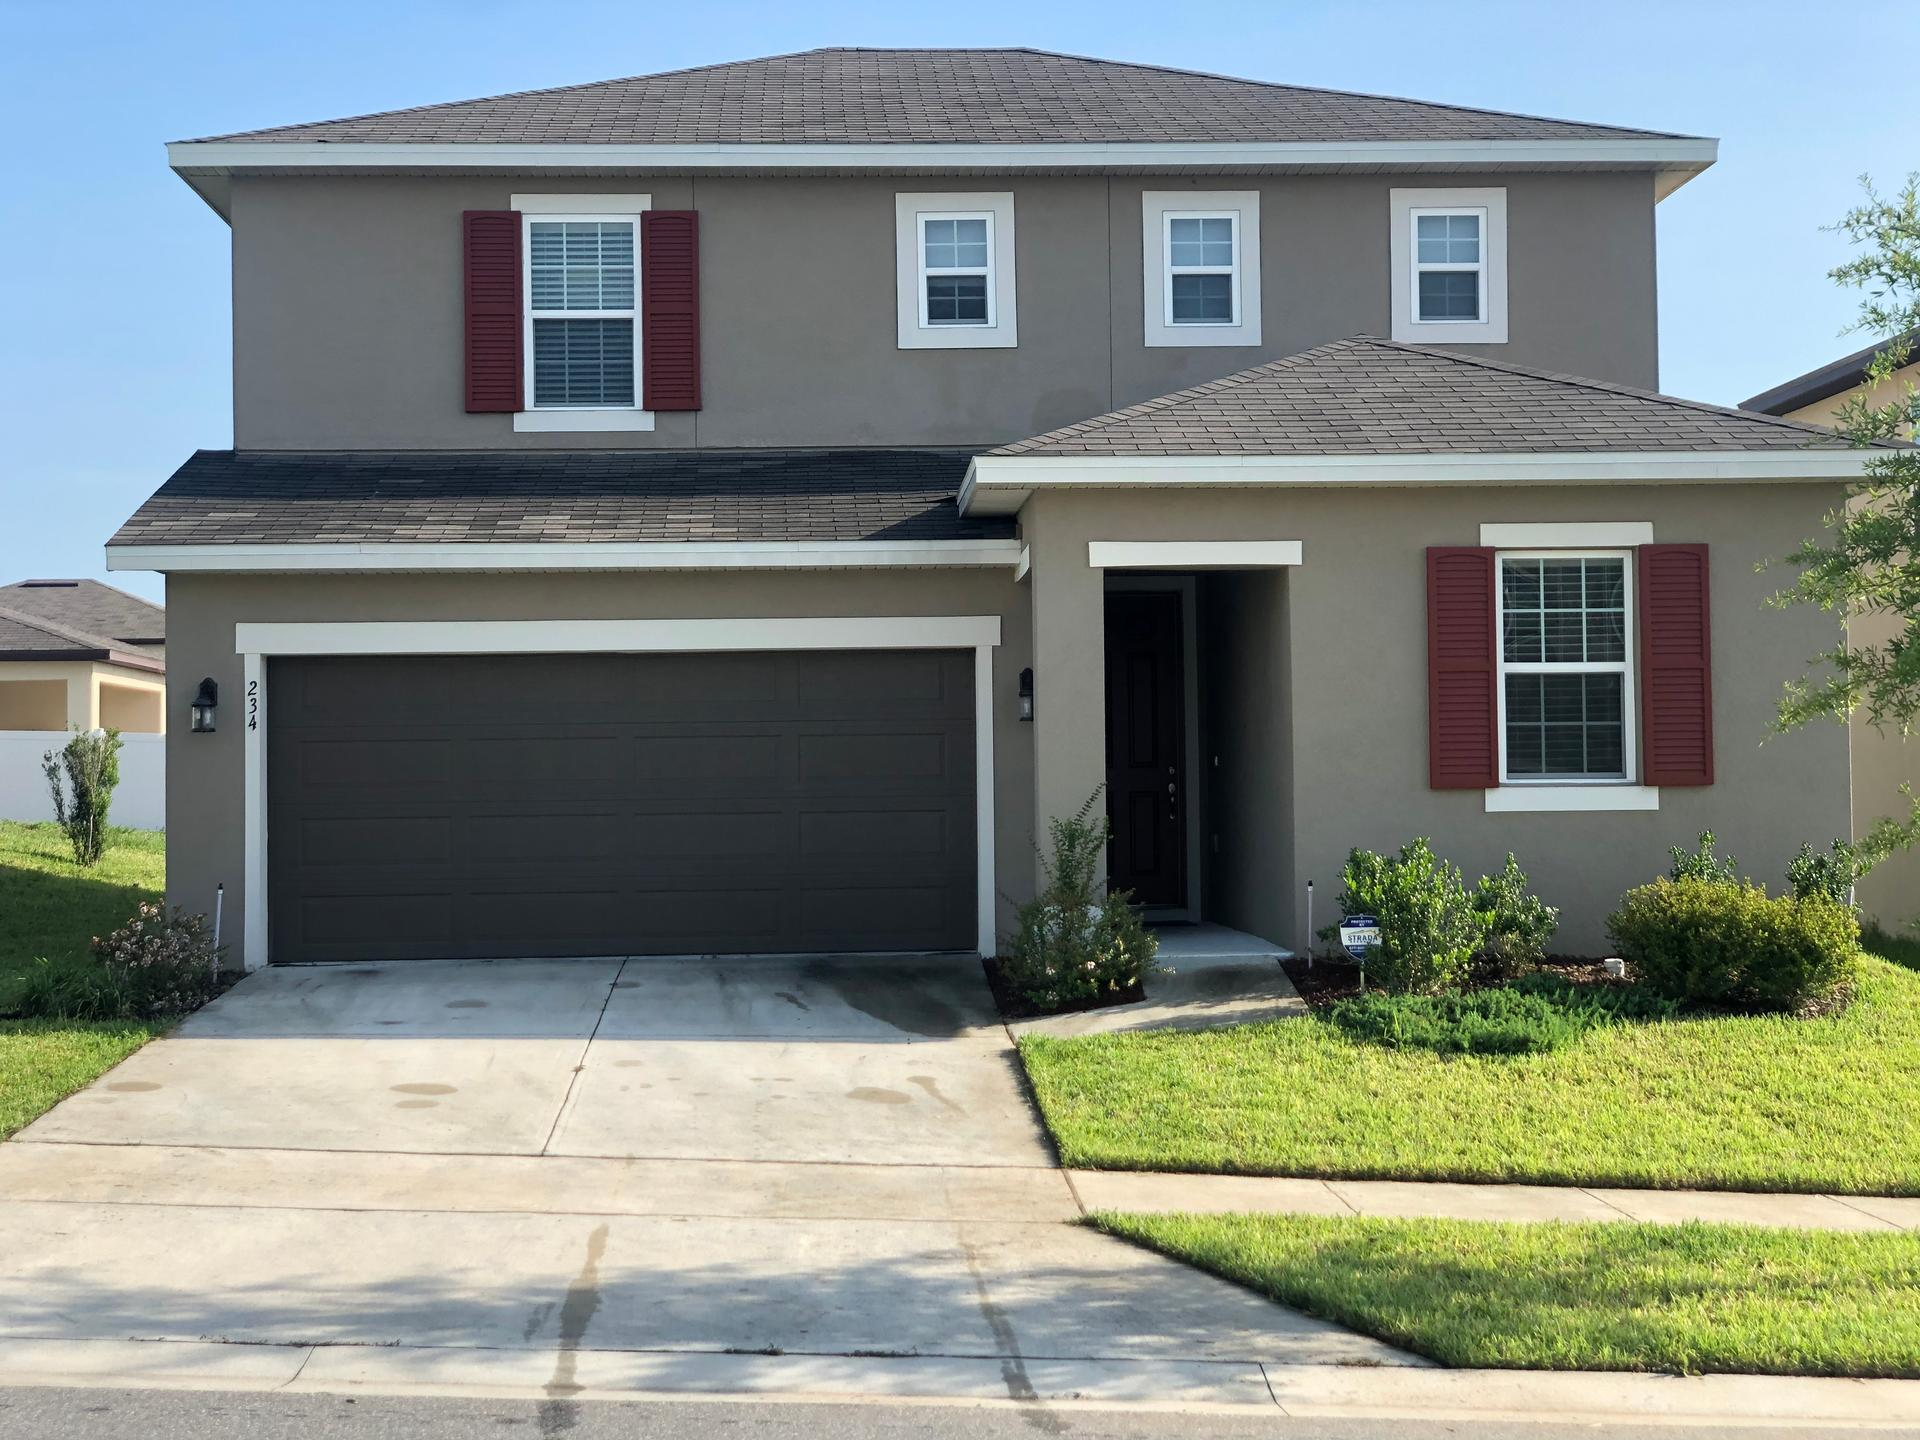 Photo of property: 234 Stonehaven Dr Davenport Fl 33896